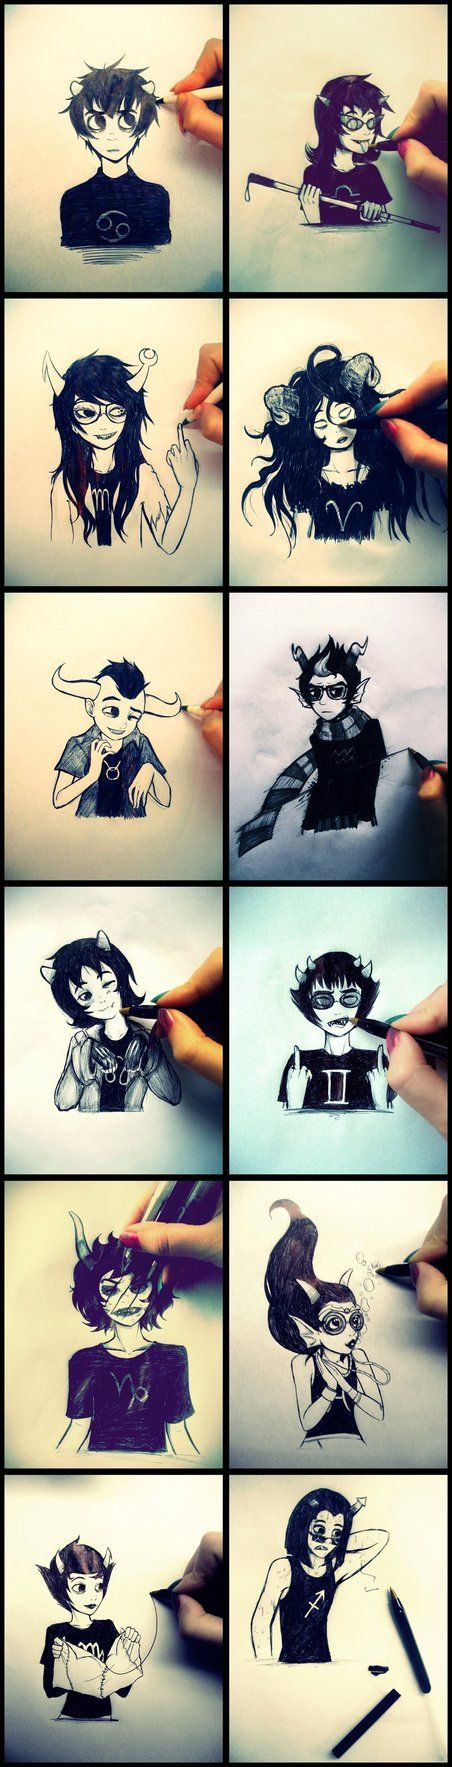 Homestuck - Playing with trolls c: by MelSpontaneus on deviantART